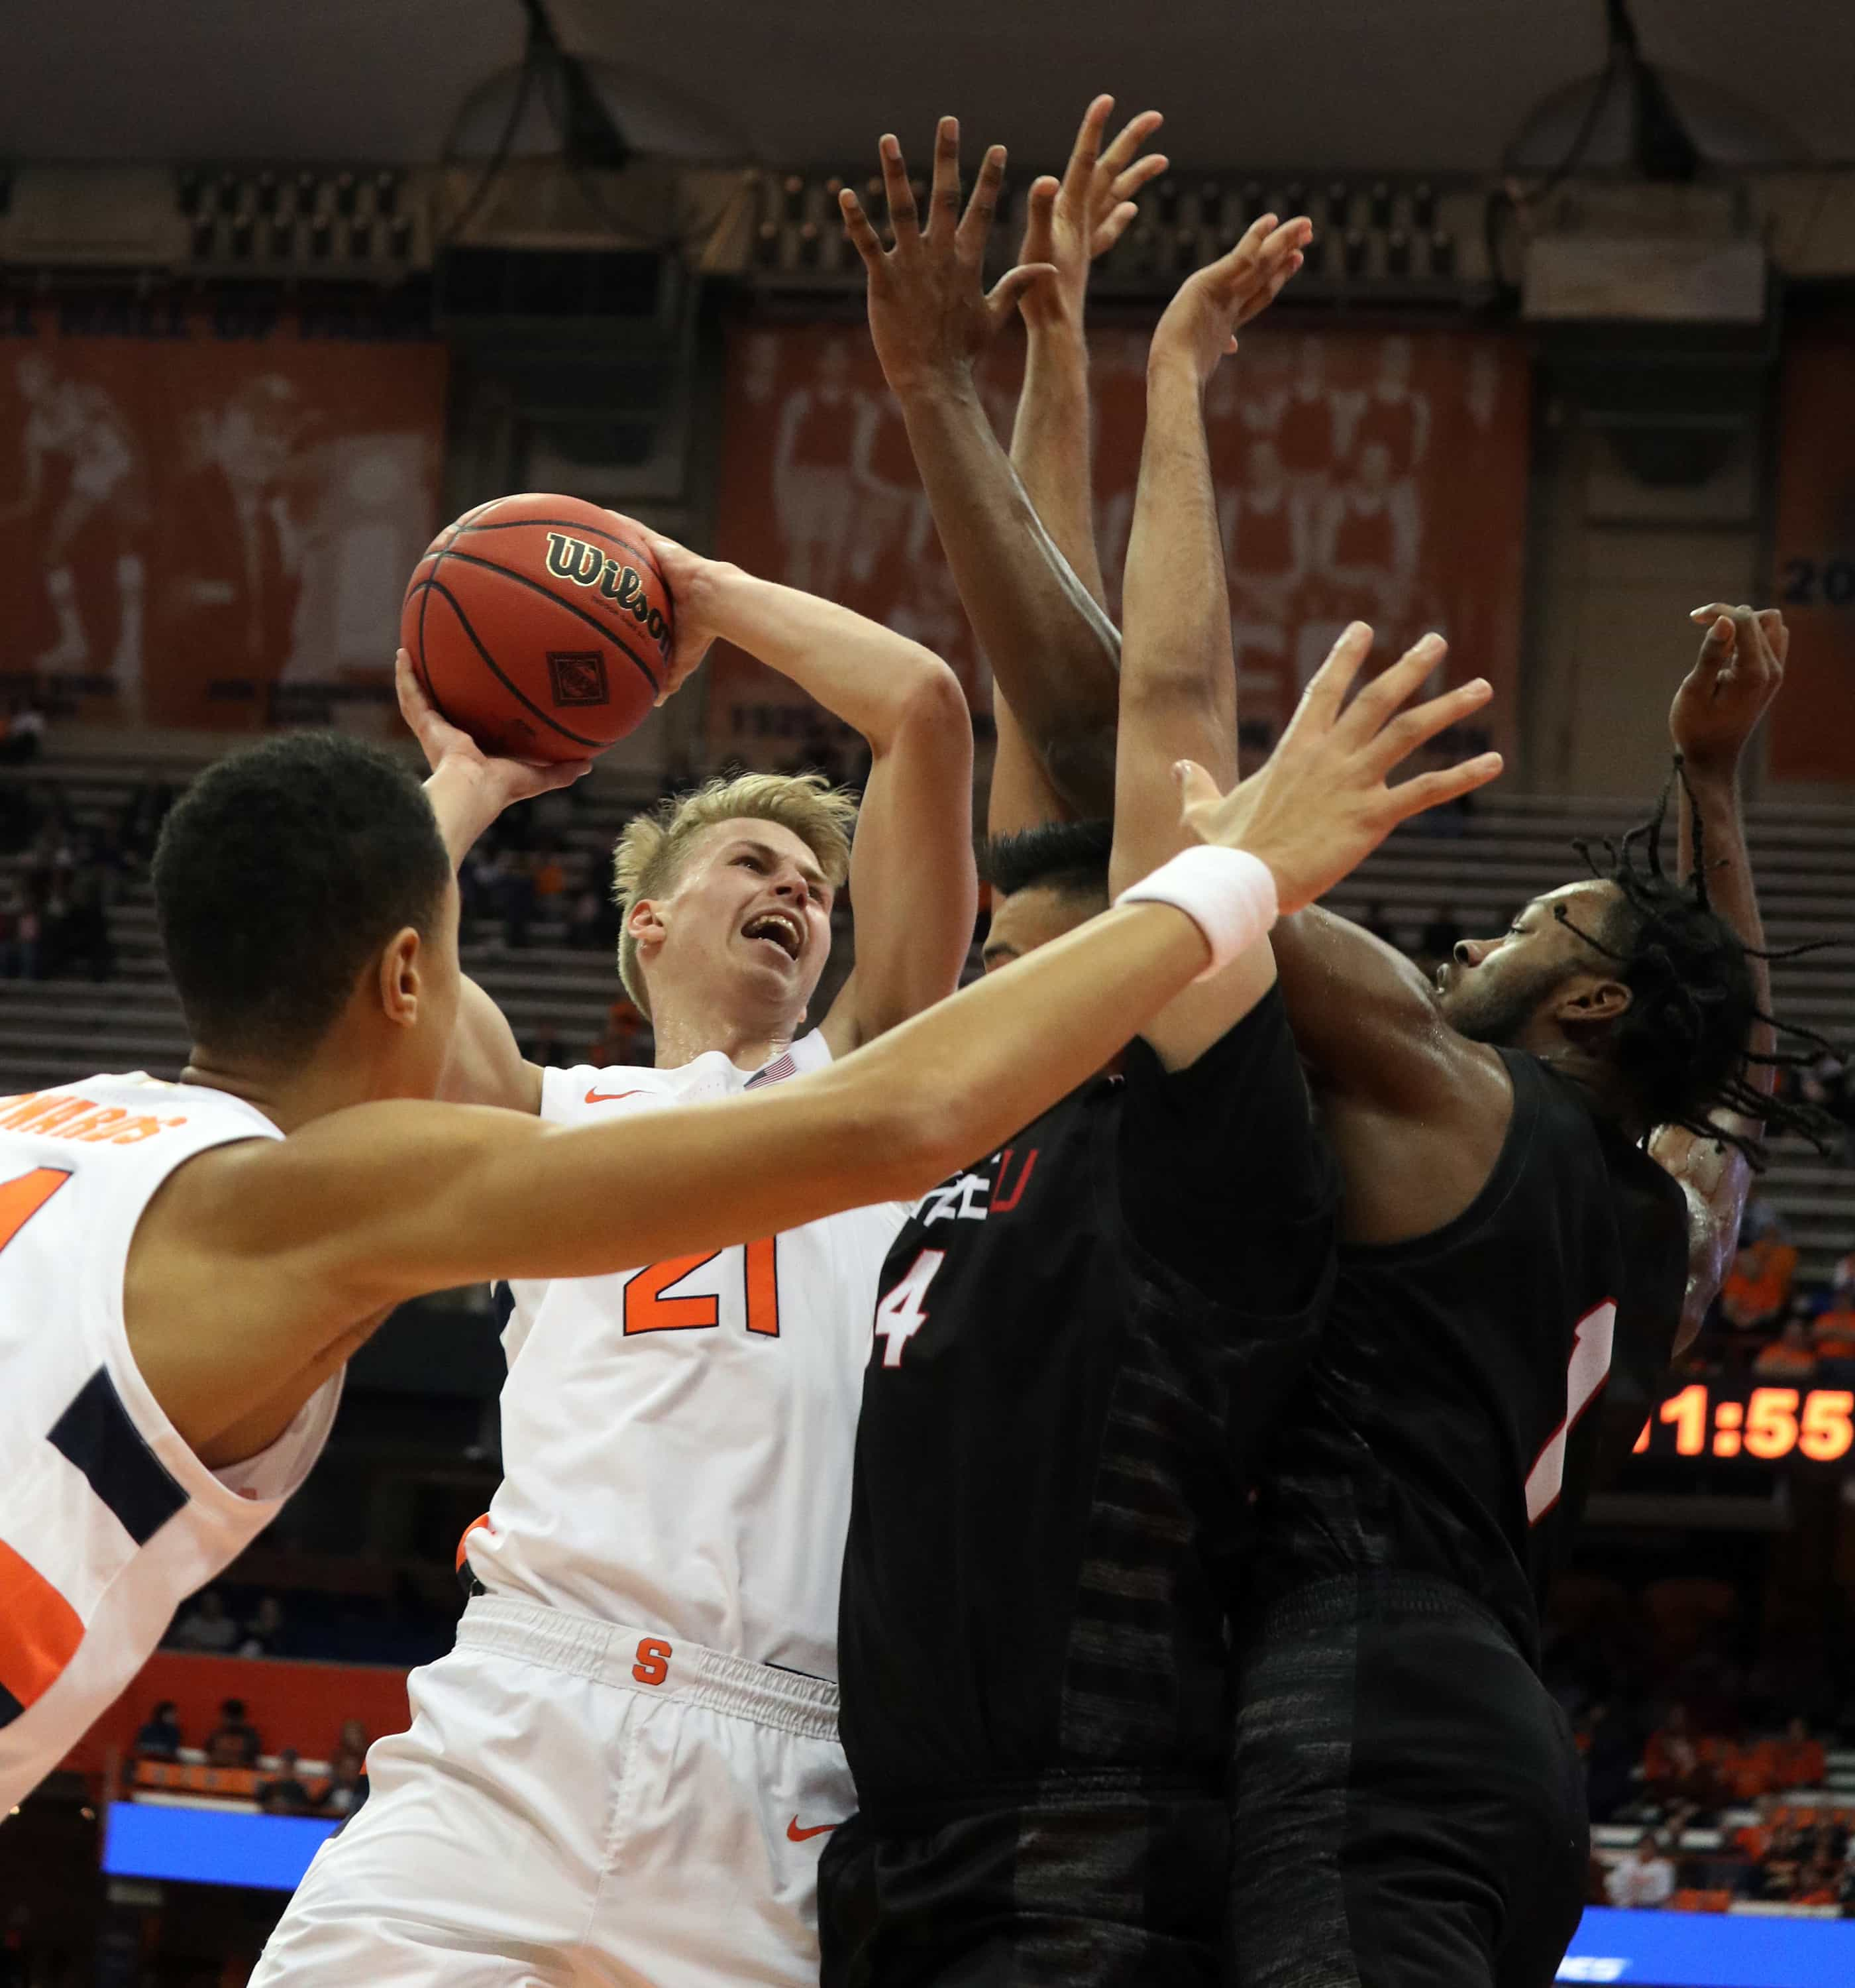 Syracuse University's forward Marek Dolezaj (21), goes for a lay-up against Seattle University during a college basketball game on Nov. 16, 2019. Syracuse beat Seattle with a score of 89 to 67.